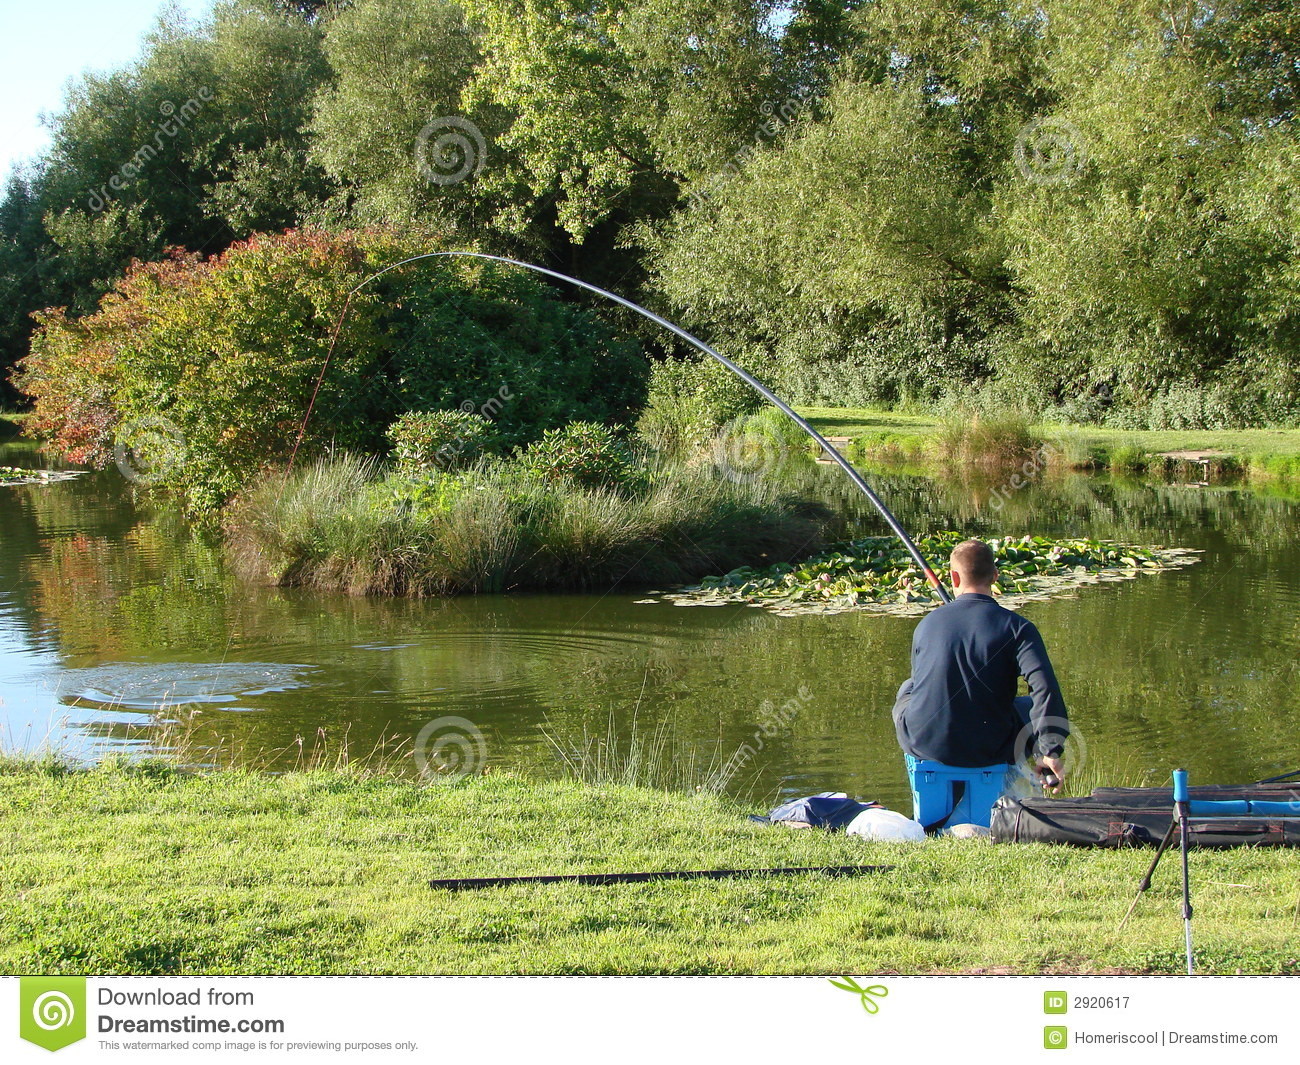 Pole fishing for carp stock image image of relax stress for Fishing for carp